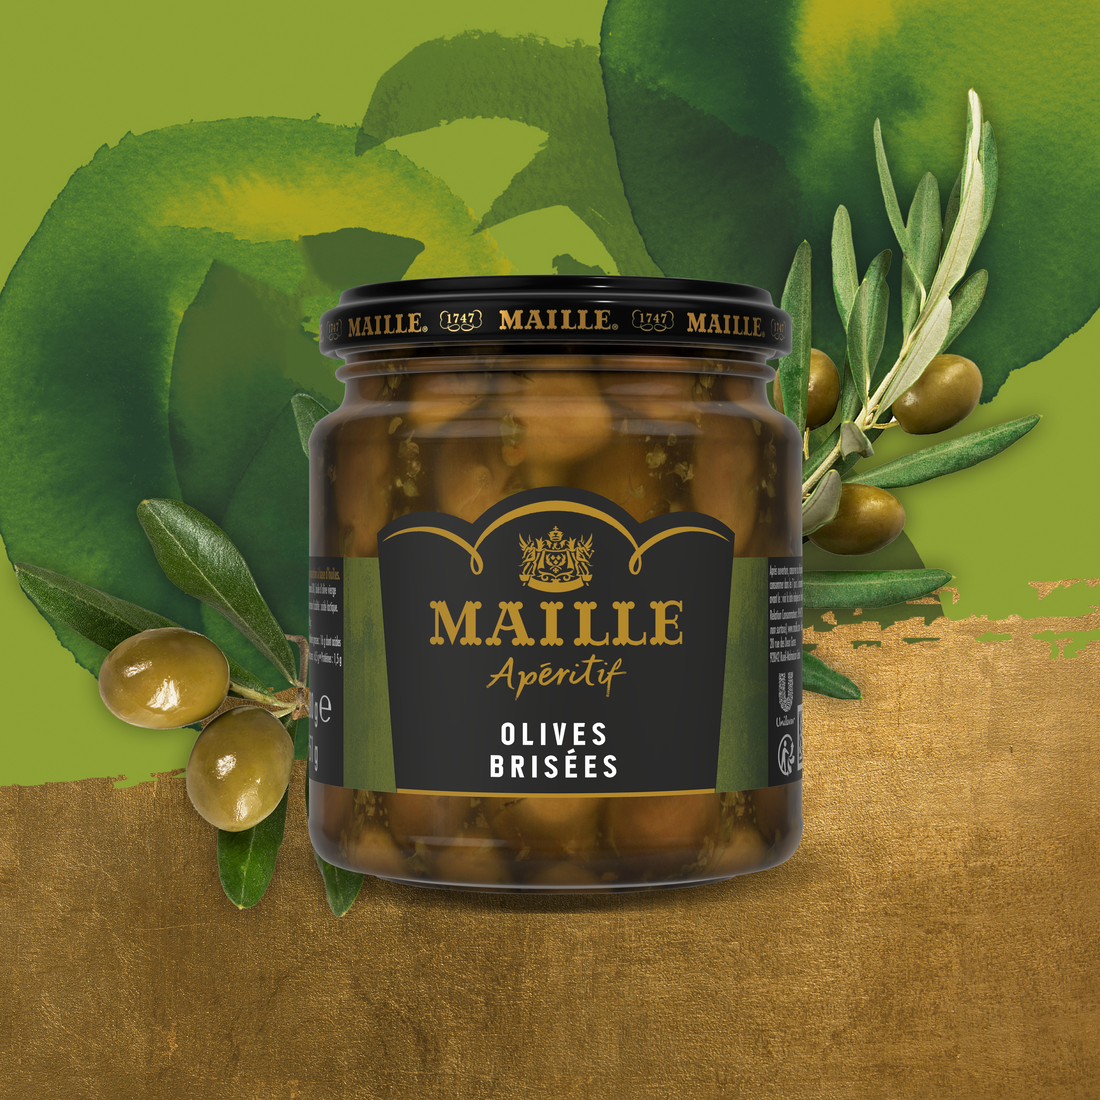 MAILLE APERITIF OLIVES BRISEES, 280G